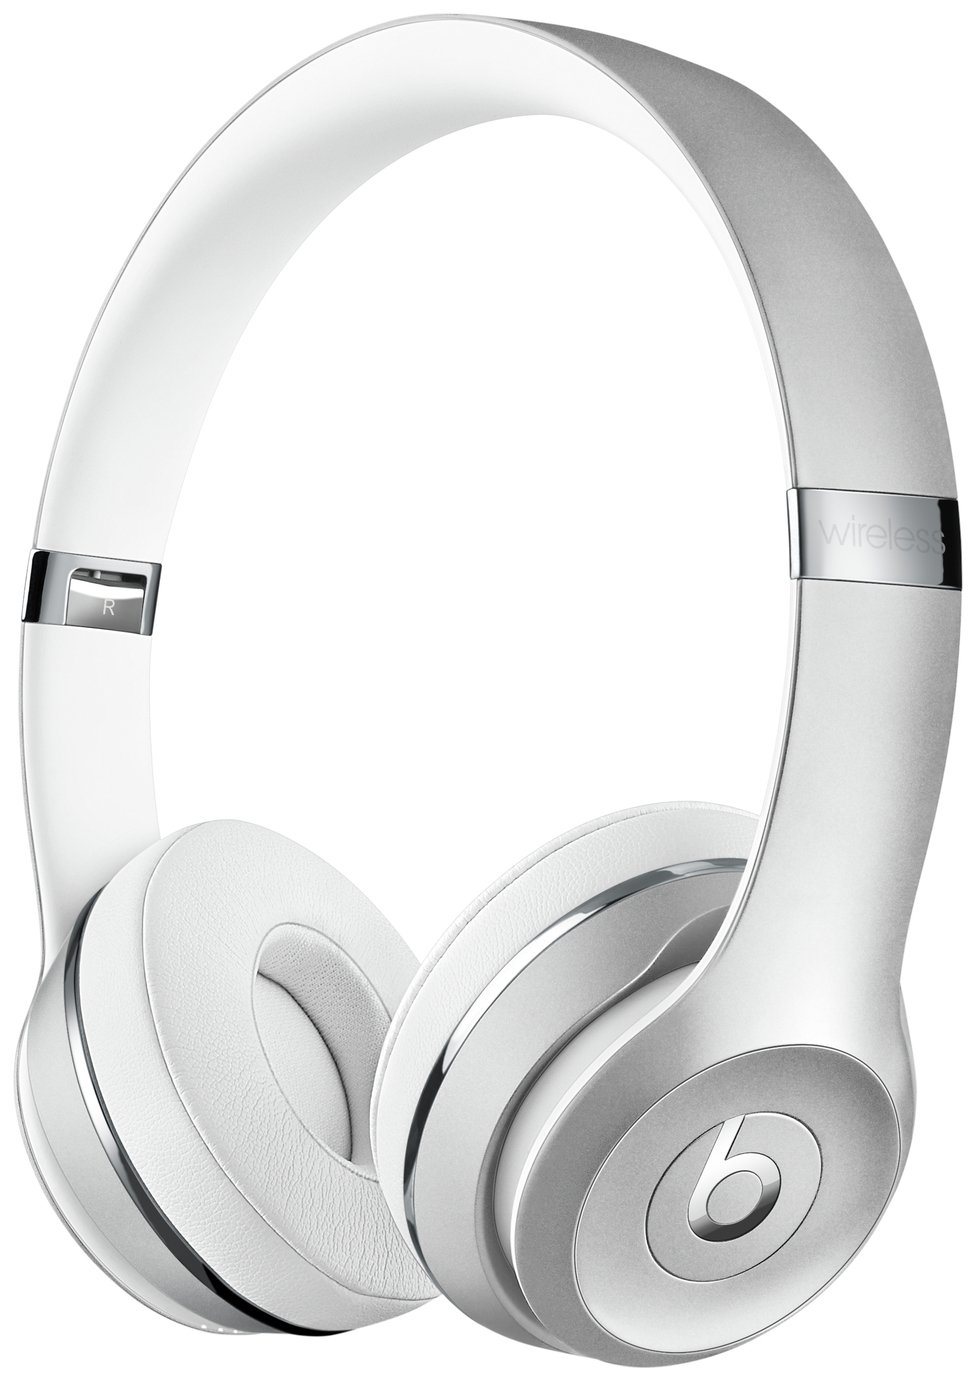 Beats by Dre Solo 3 On-Ear Wireless Headphones - Silver from Beats